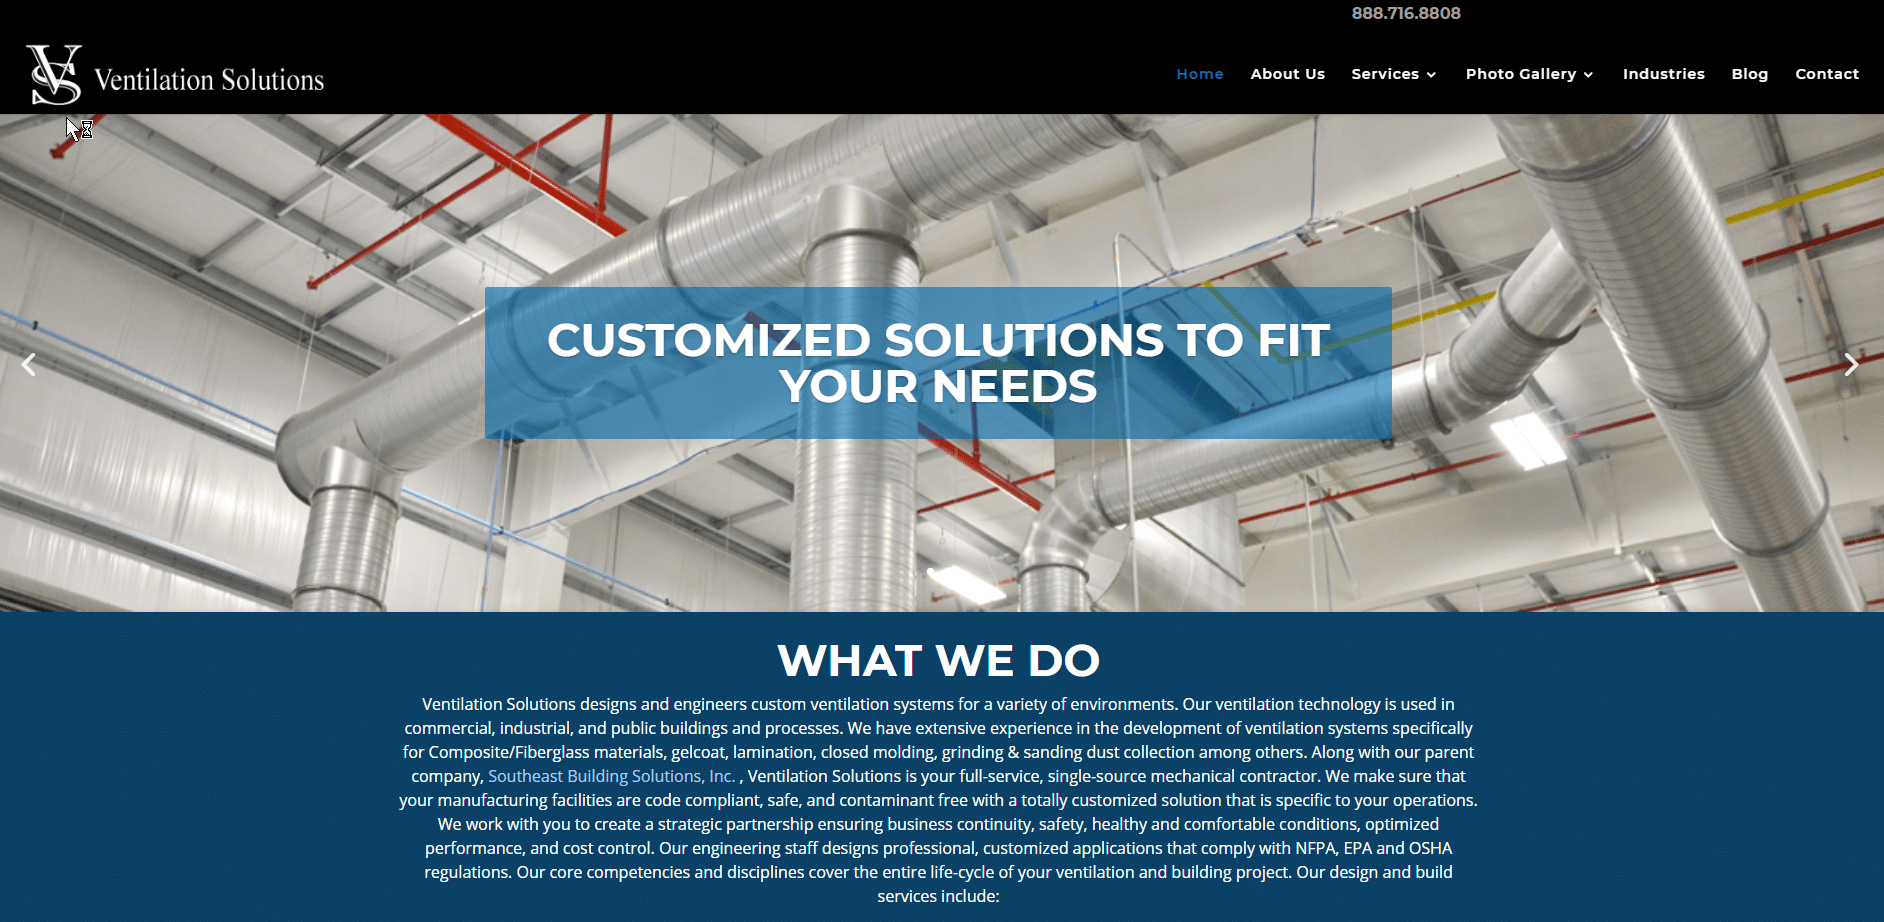 ventilation solutions construction website new york